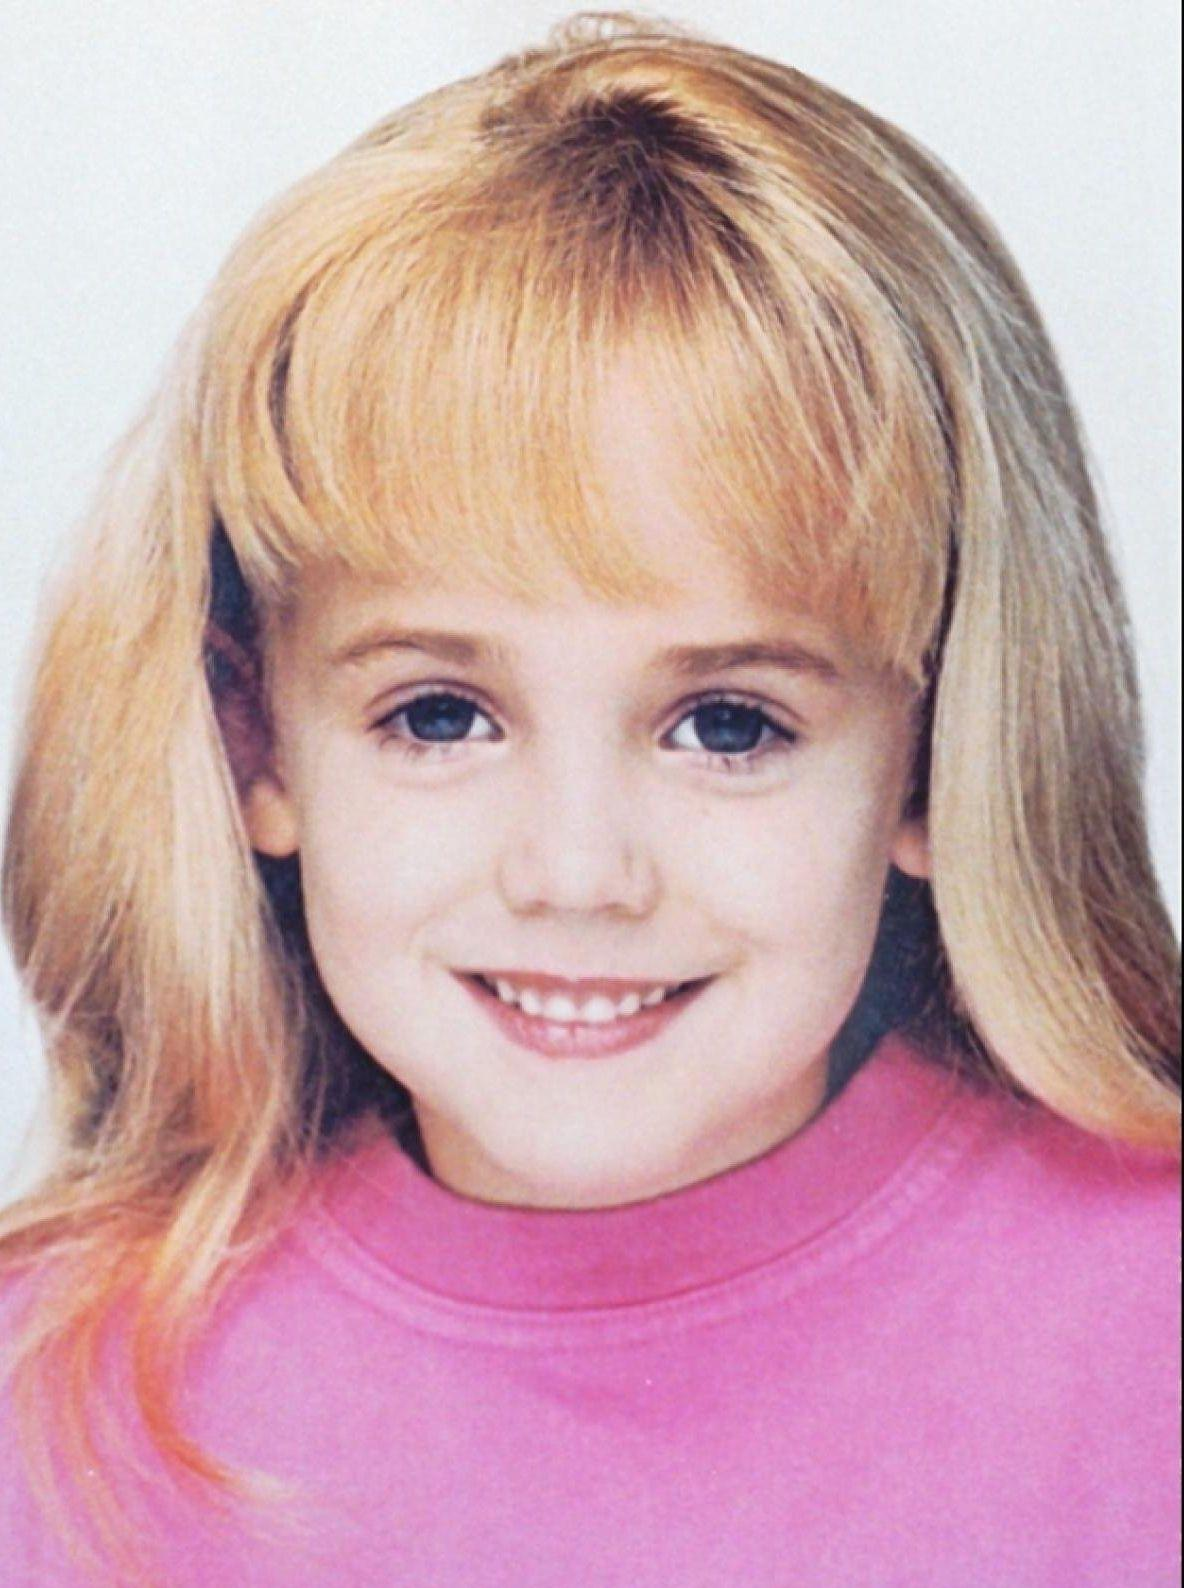 """On Dec. 26, 1996, 6-year-old JonBenet Ramsey was found bludgeoned and strangled to death in the basement of her family's Boulder, Colorado, home. A ransom note from an anonymous group of individuals """"that represent a foreign faction"""" asking for $118,000 in exchange for the safe return of JonBenet was found just hours before, but no call ever came from a kidnapper and it was never linked to a murderer. The entire Ramsey family was cleared of any involvement in the murder of JonBenet back in 2008, thanks to then newly discovered DNA evidence, according to 9News. <br><br>Beginning in 2010, investigators reopened the case and launched a fresh round of interviews with witnesses that could provide more insight into the murder, according to ABC News, but nothing fruitful came of those interviews. The DNA evidence still points to an """"unexplained third party"""" that serves as a vague lead for authorities still pursuing the case, Time magazine reported. Boulder police have tested more than 150 DNA samples and investigated nearly the same amount of potential suspects in their ongoing investigation, but none have ever been linked to the crime. <br><br><strong>Read More:</strong> <a href=""""http://www.huffingtonpost.com/2013/10/28/jonbenet-ramsey-killer-_n_4170502.html?utm_hp_ref=cold-case"""" rel=""""nofollow noopener"""" target=""""_blank"""" data-ylk=""""slk:JonBenet Ramsey's Killer 'May Be Lost Forever'"""" class=""""link rapid-noclick-resp"""">JonBenet Ramsey's Killer 'May Be Lost Forever'</a>"""